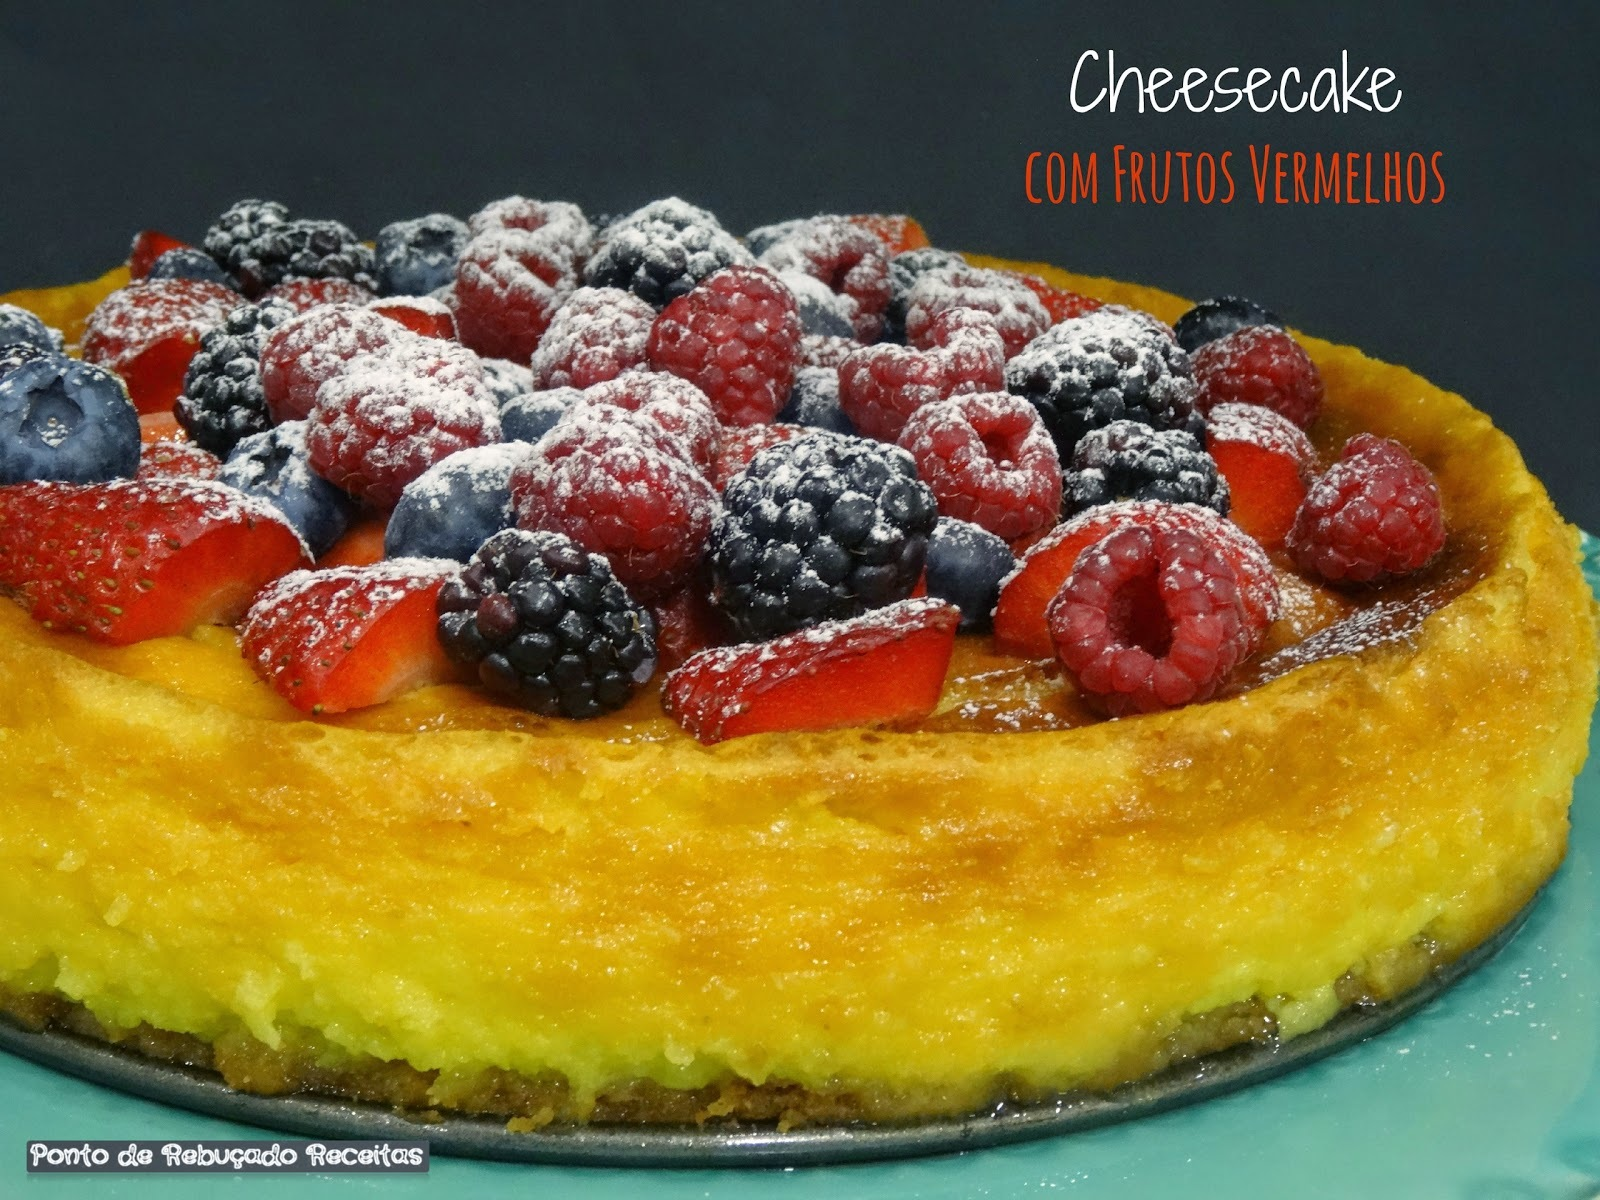 Cheesecake com frutos vermelhos